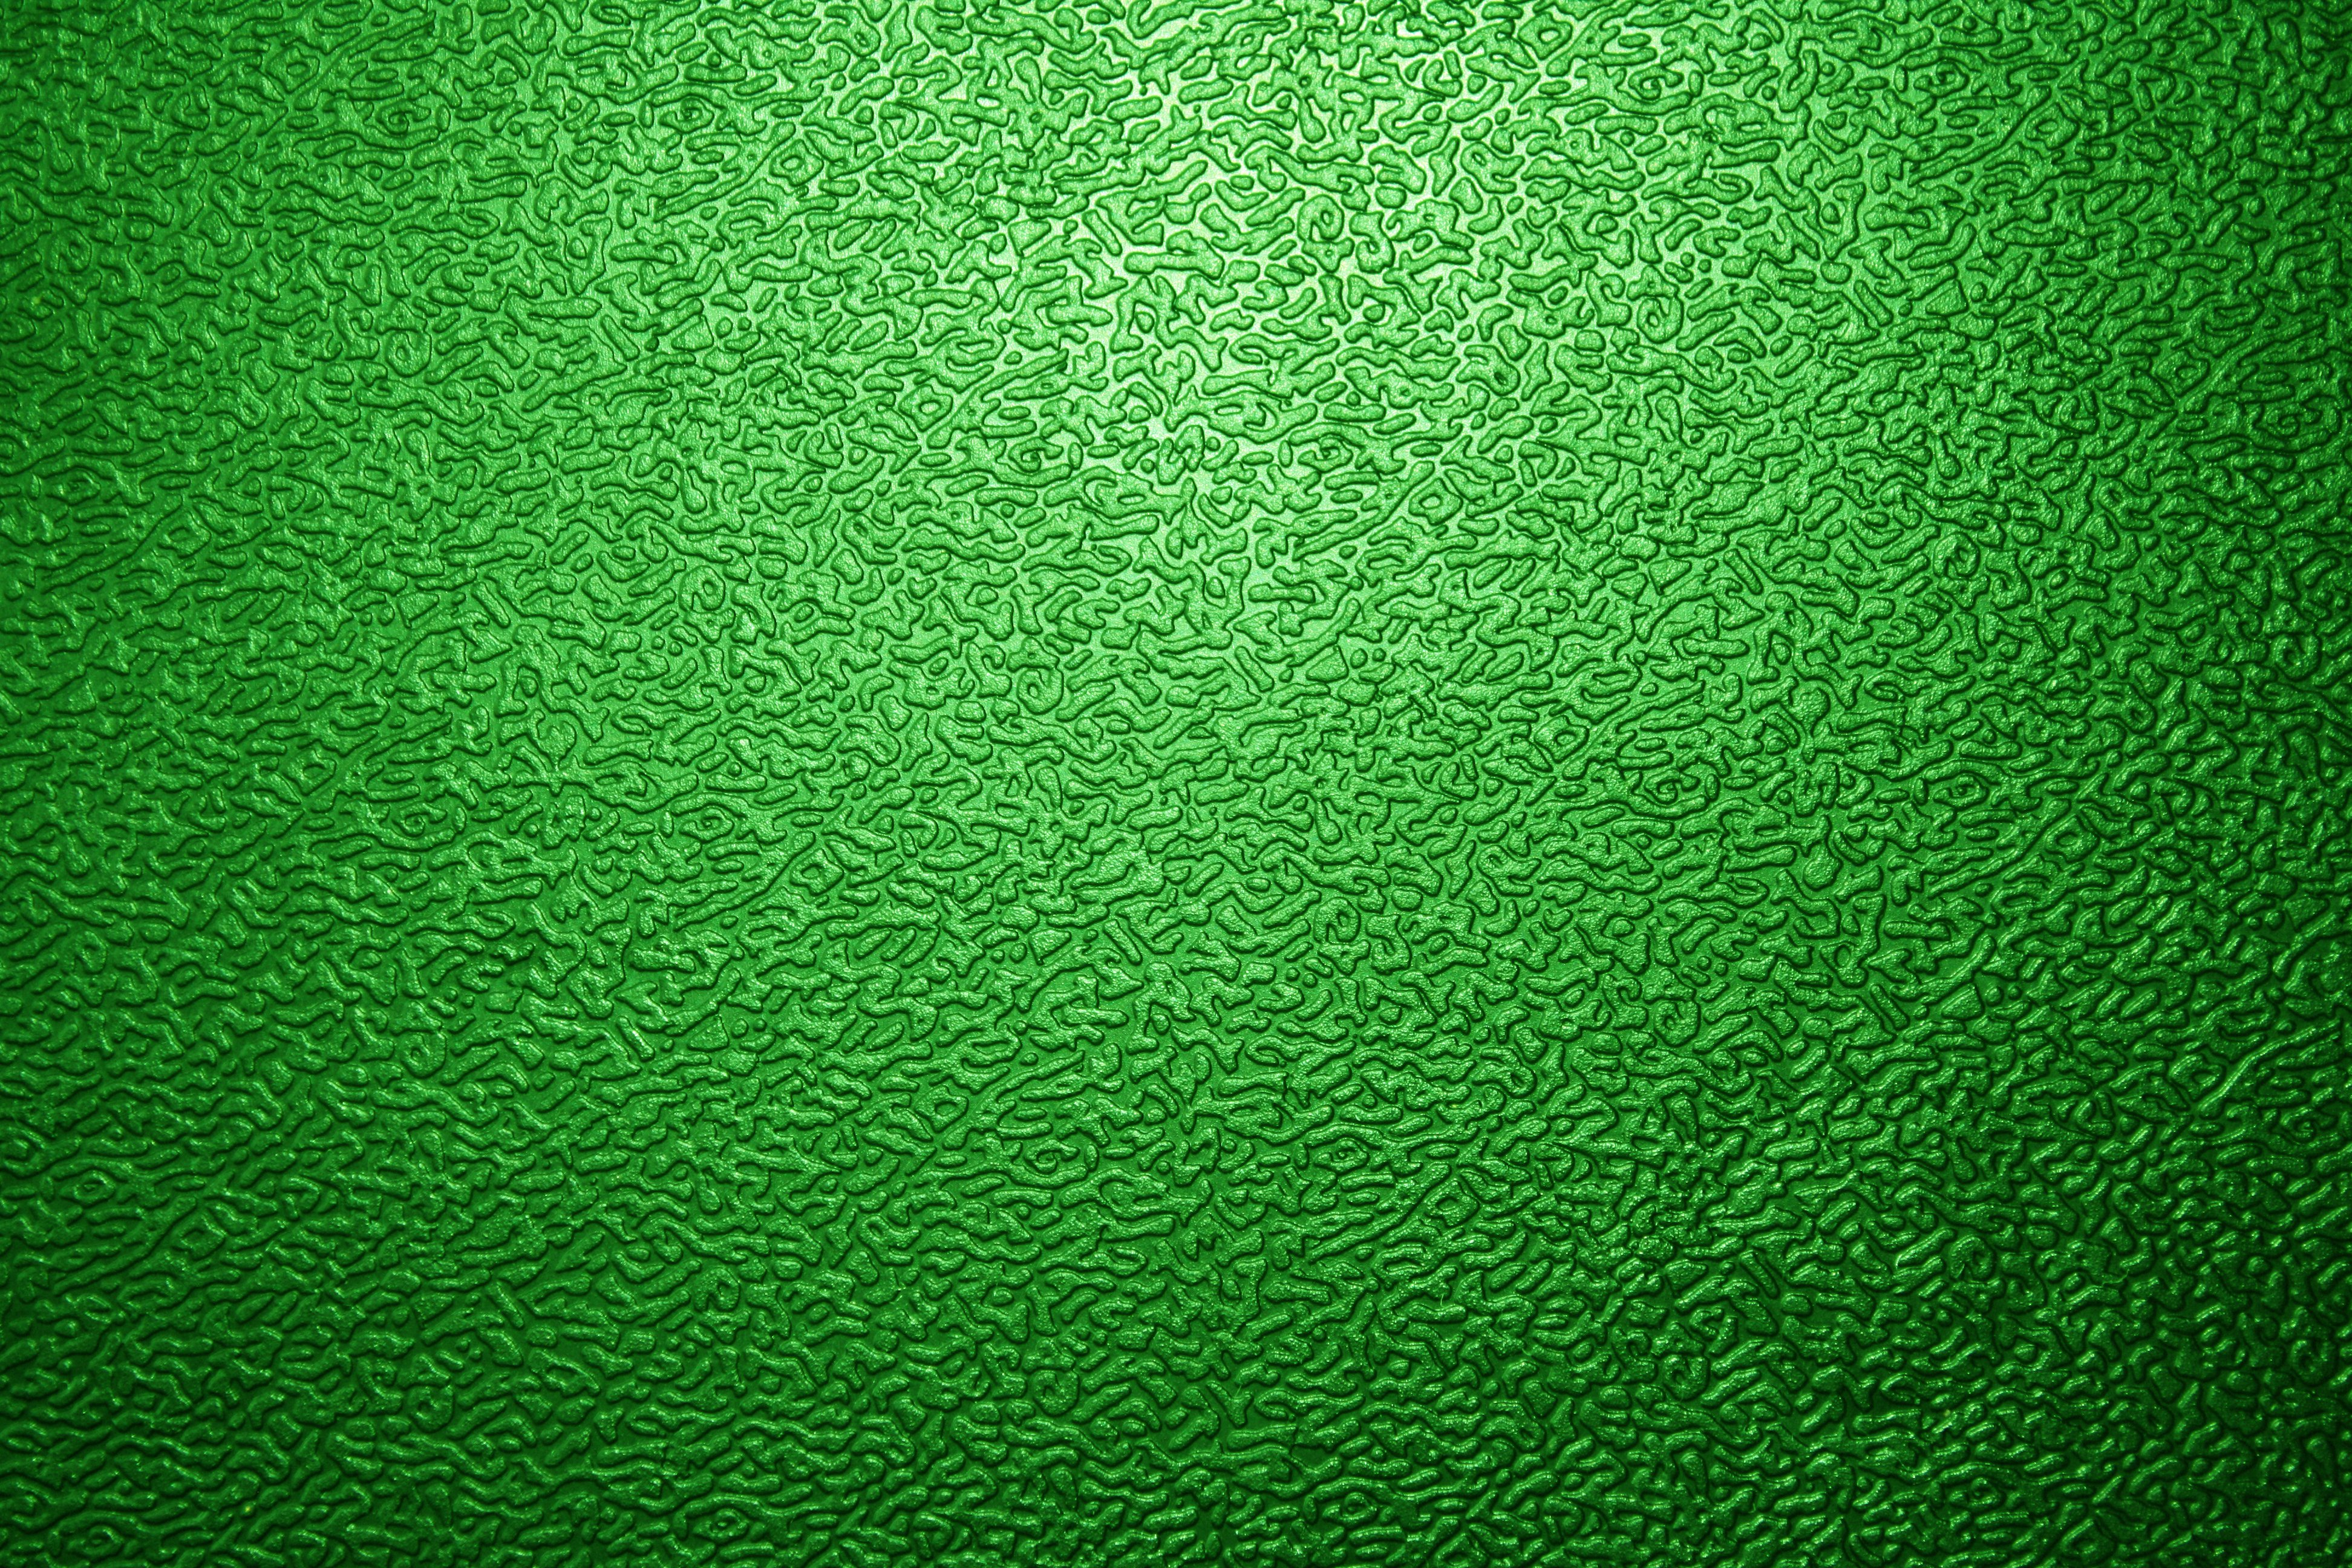 Pink fabric texture free high resolution photo dimensions 3888 - Textured Green Plastic Close Up